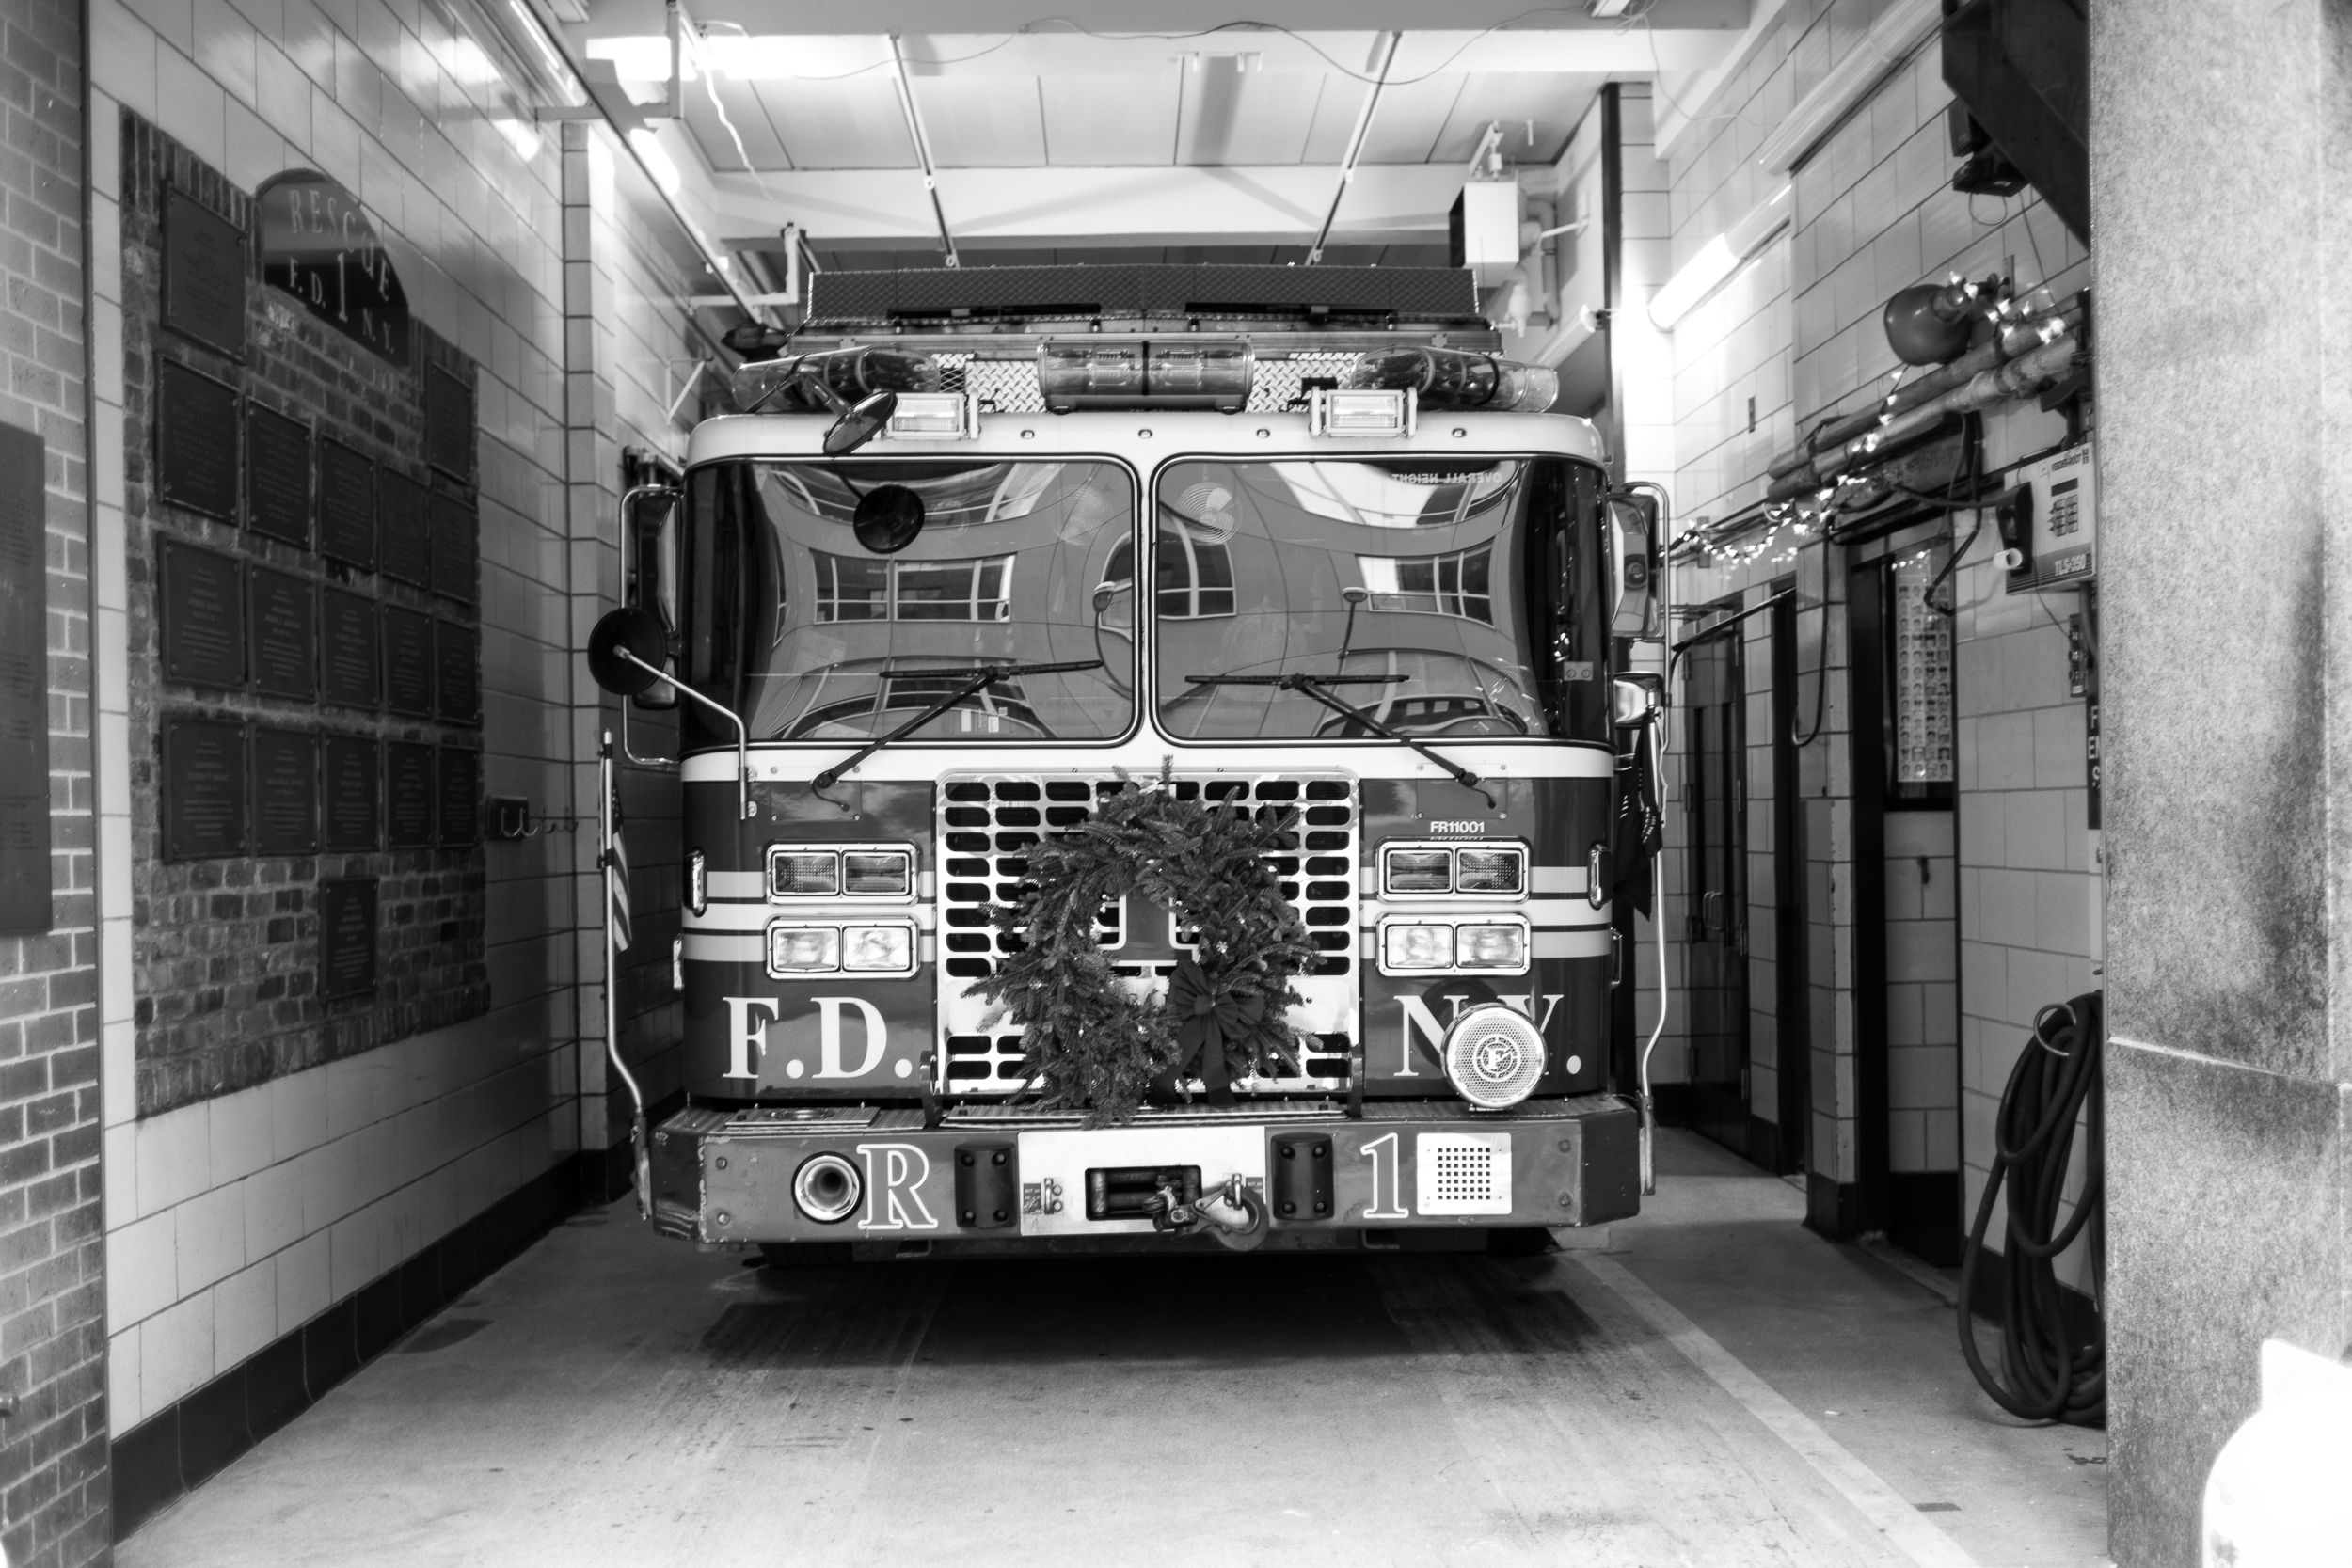 Ready and Waiting.  A FDNY truck sits at the ready to respond to any incidents around the city.  Leica M10 with 35mm Summicron f/2.